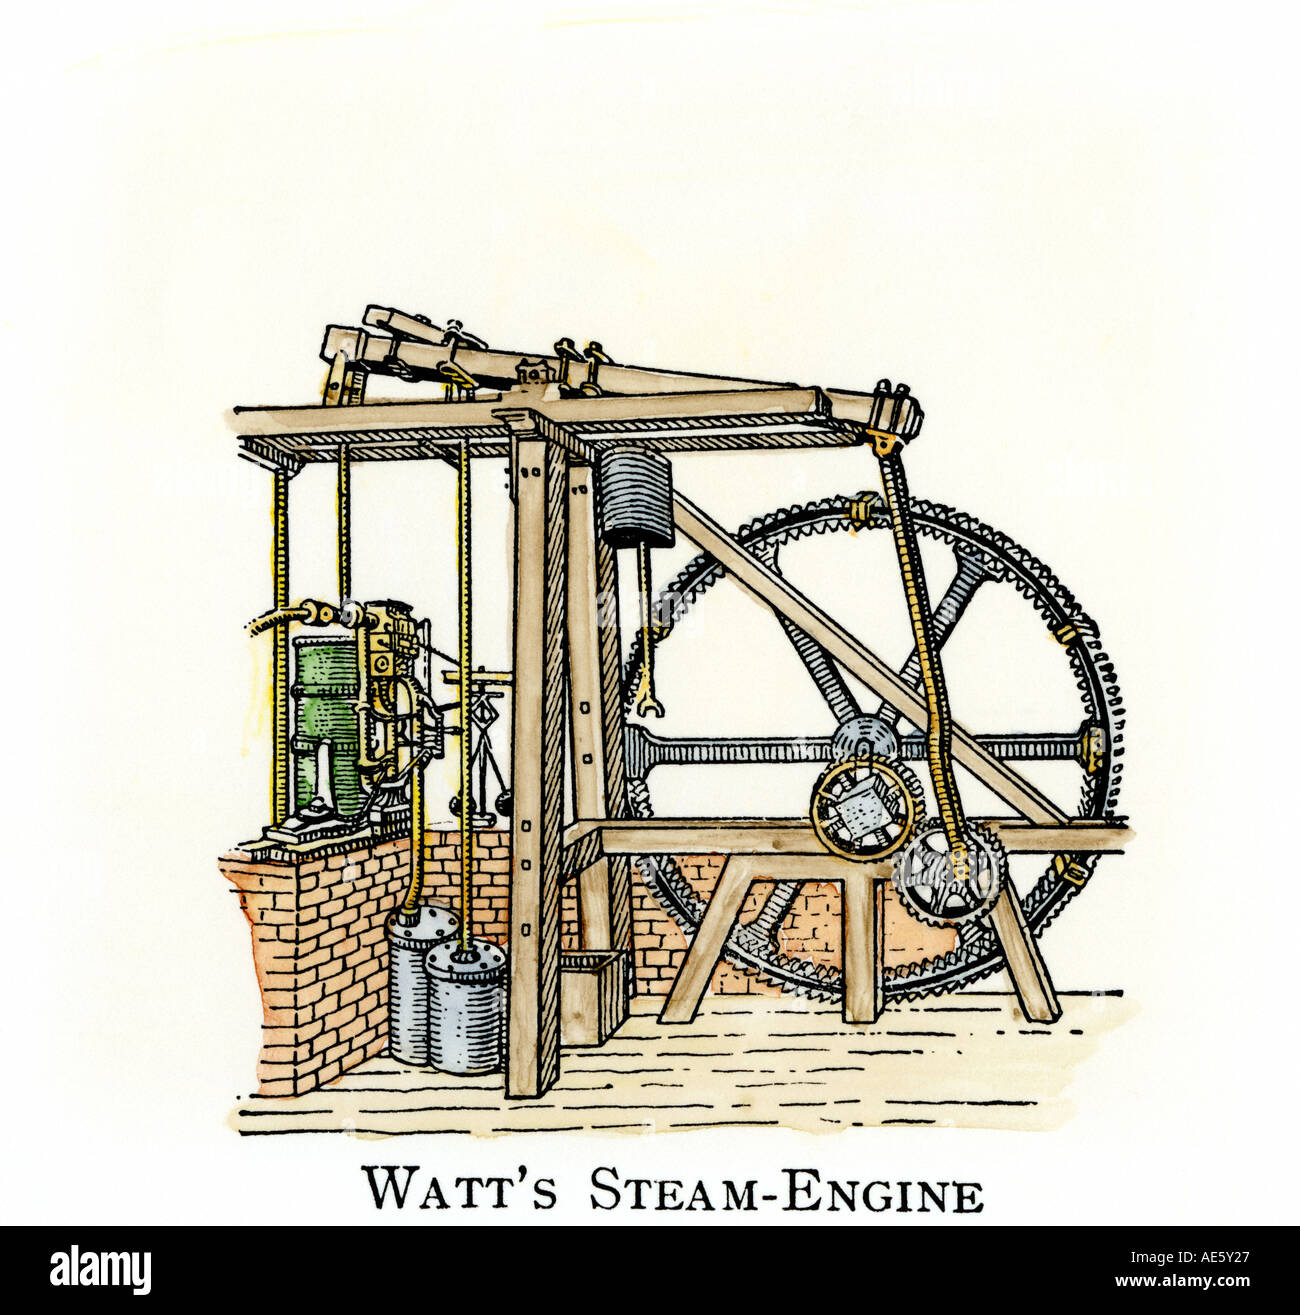 Schematic Drawing Stock Photos Images Alamy Stair Anatomy Elements Parts Illustration Diagram Of James Watt Steam Engine Hand Colored Woodcut Image